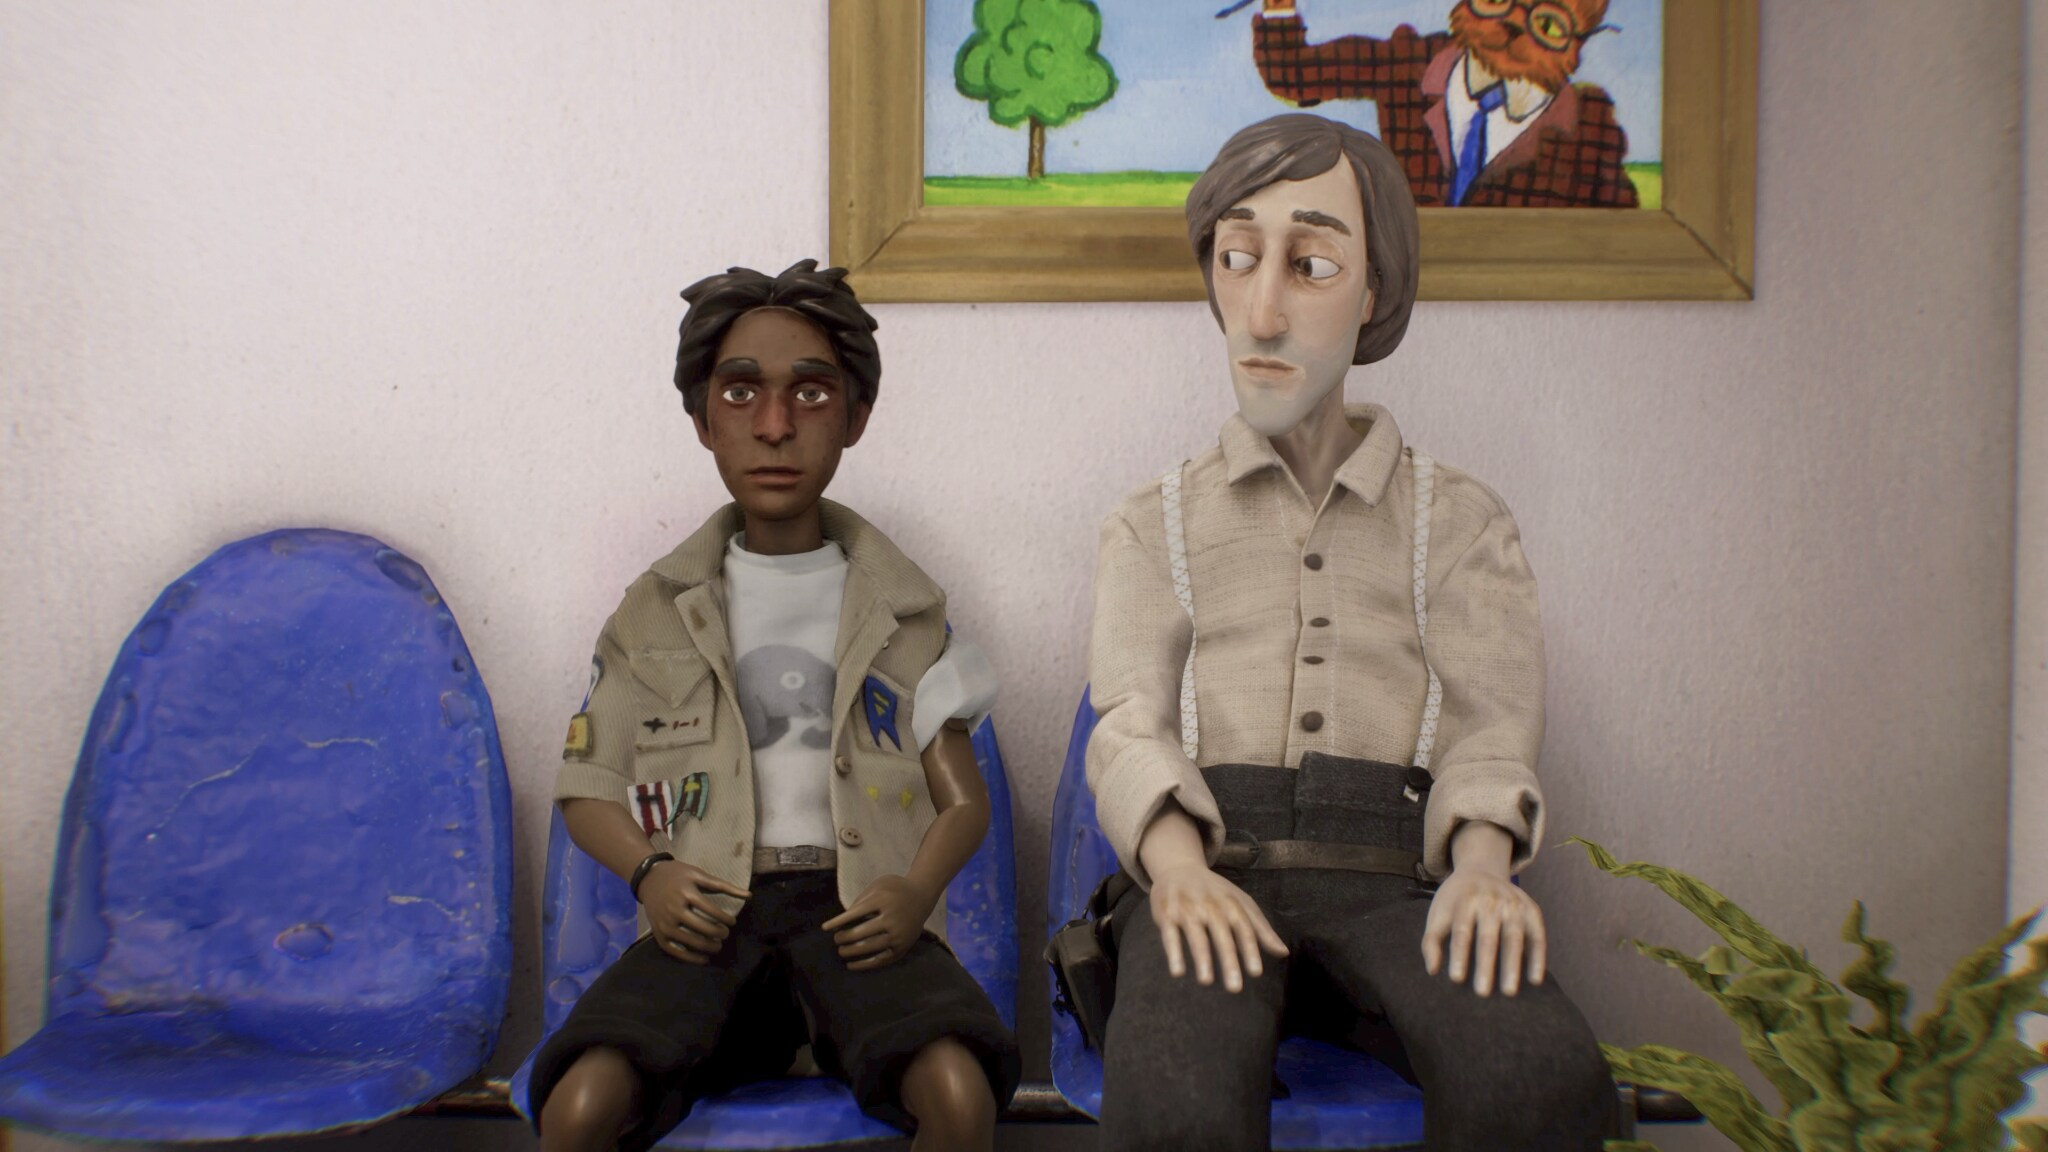 Animation of two men sat next to each other in a waiting room, there is an empty chair next to them